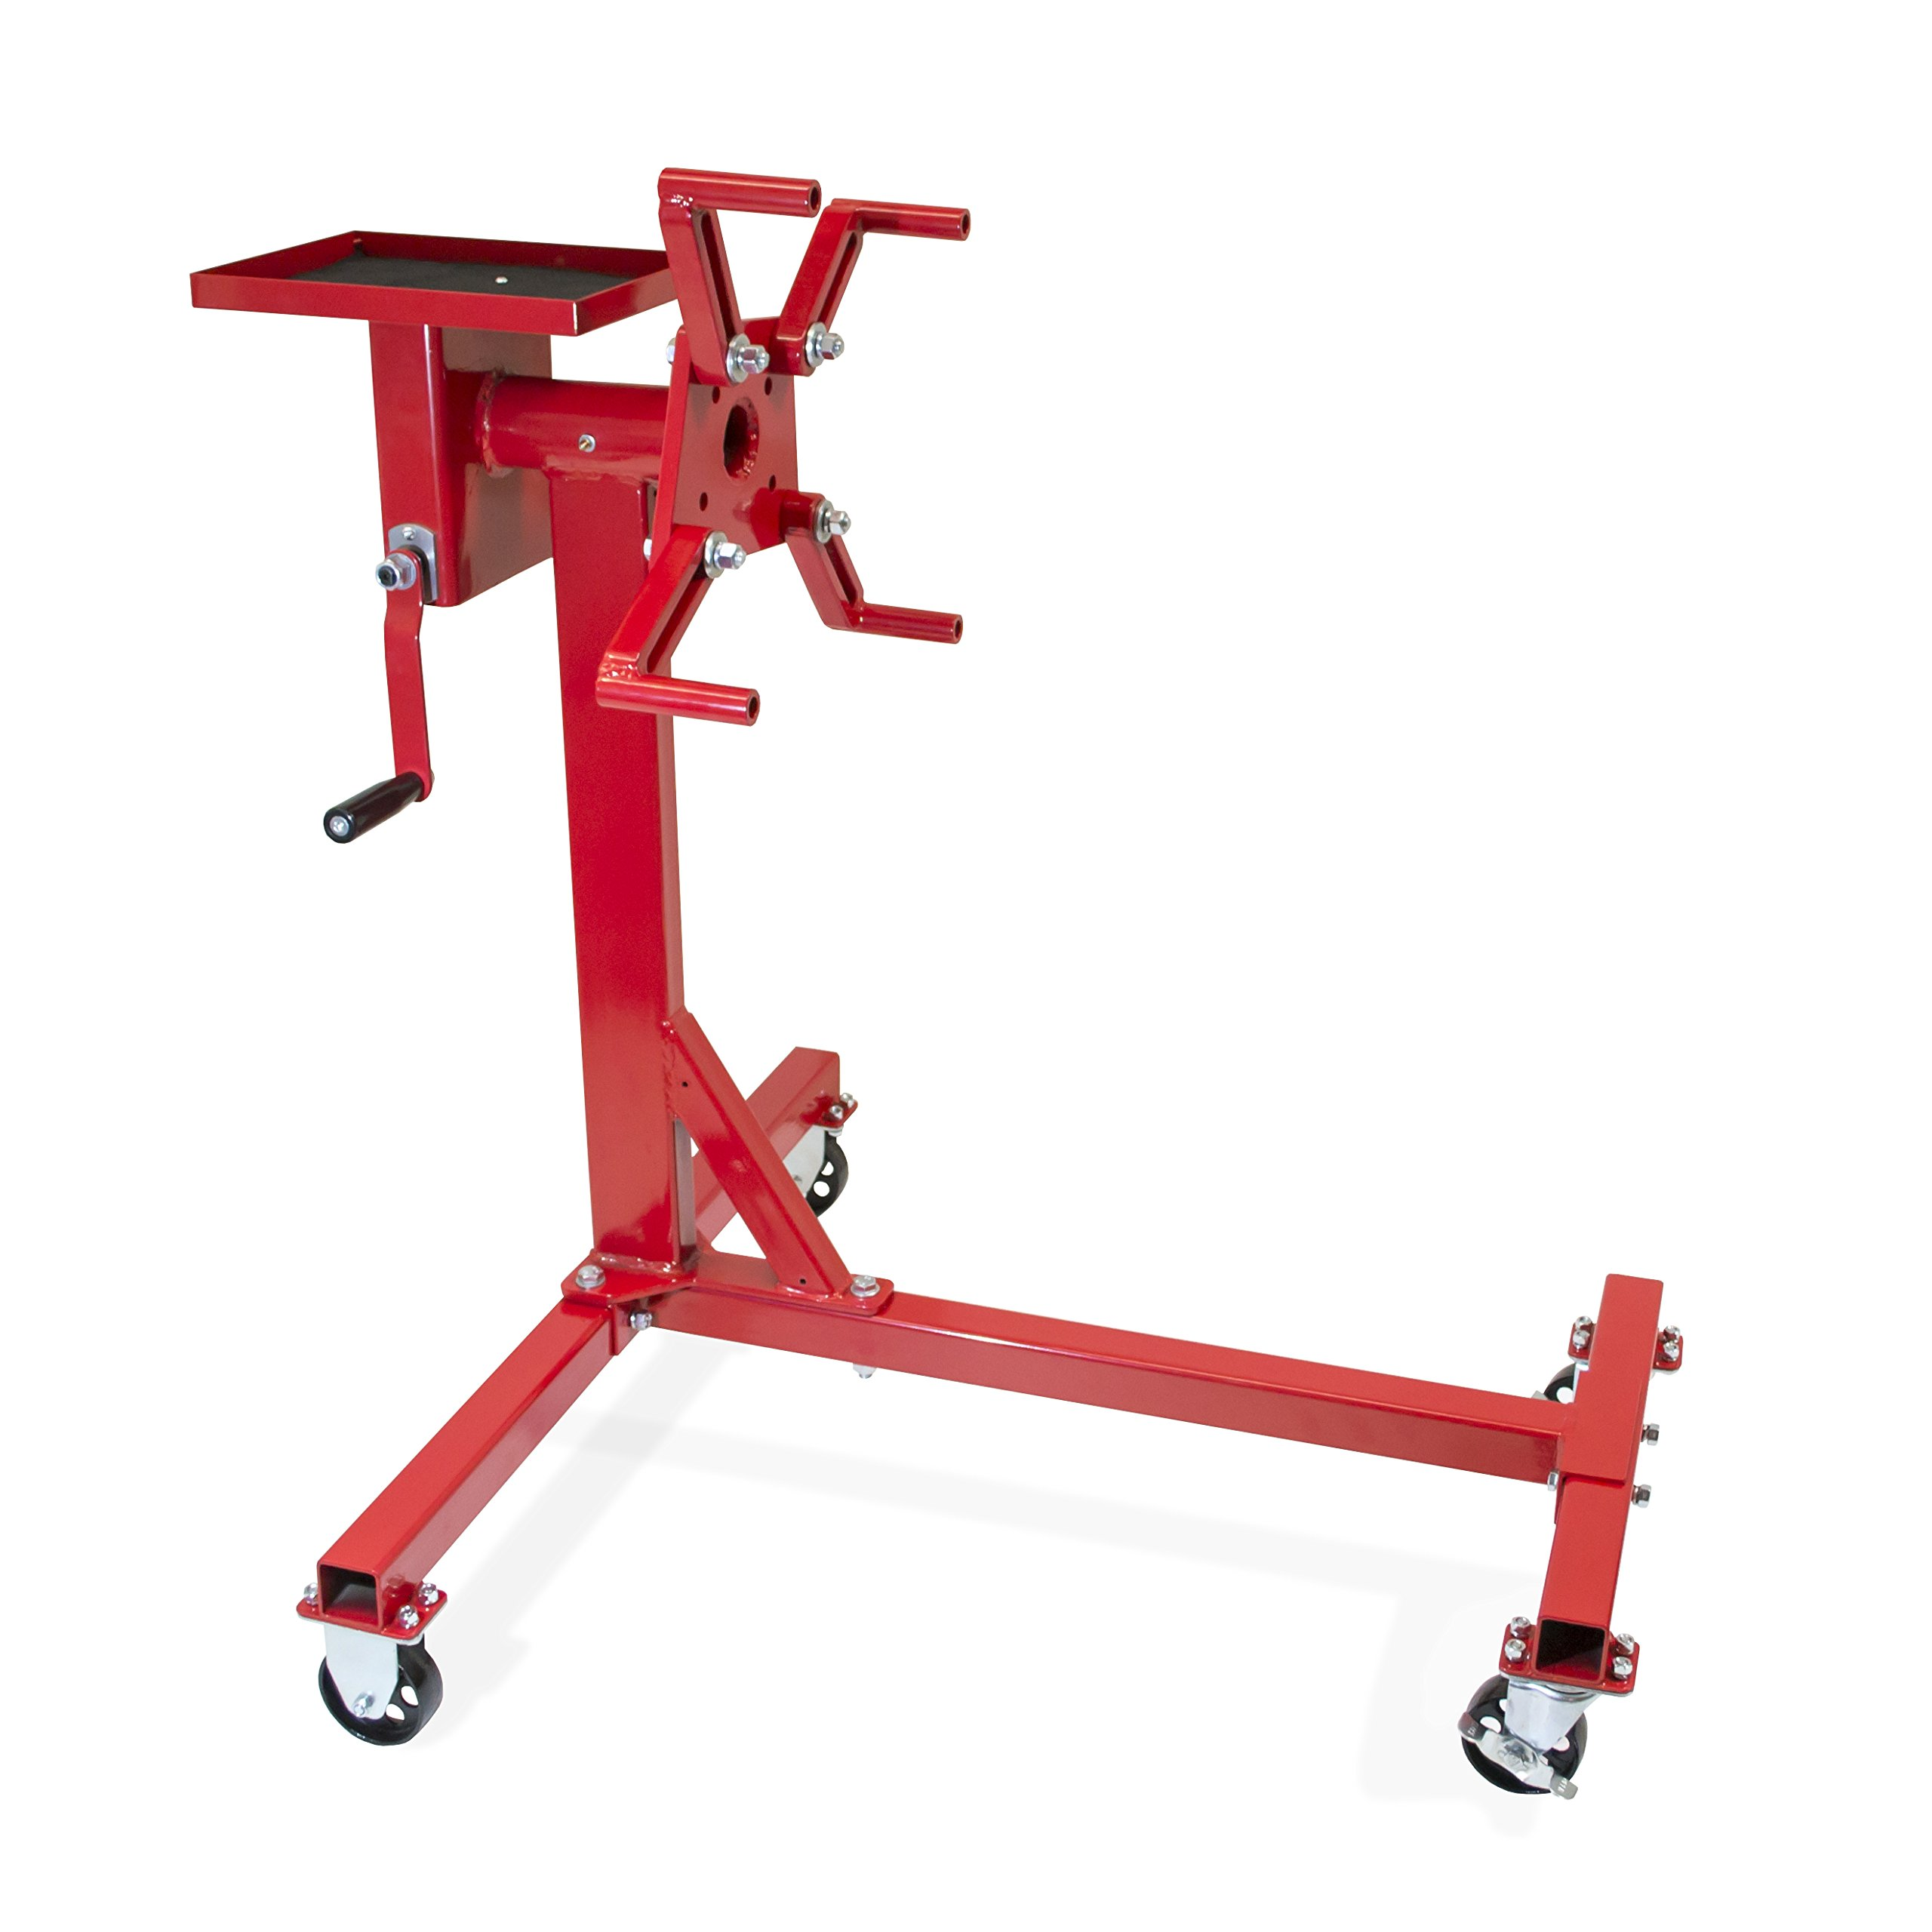 Jackco 1000 lb. Capacity Rotating Engine Stand with Tool Tray